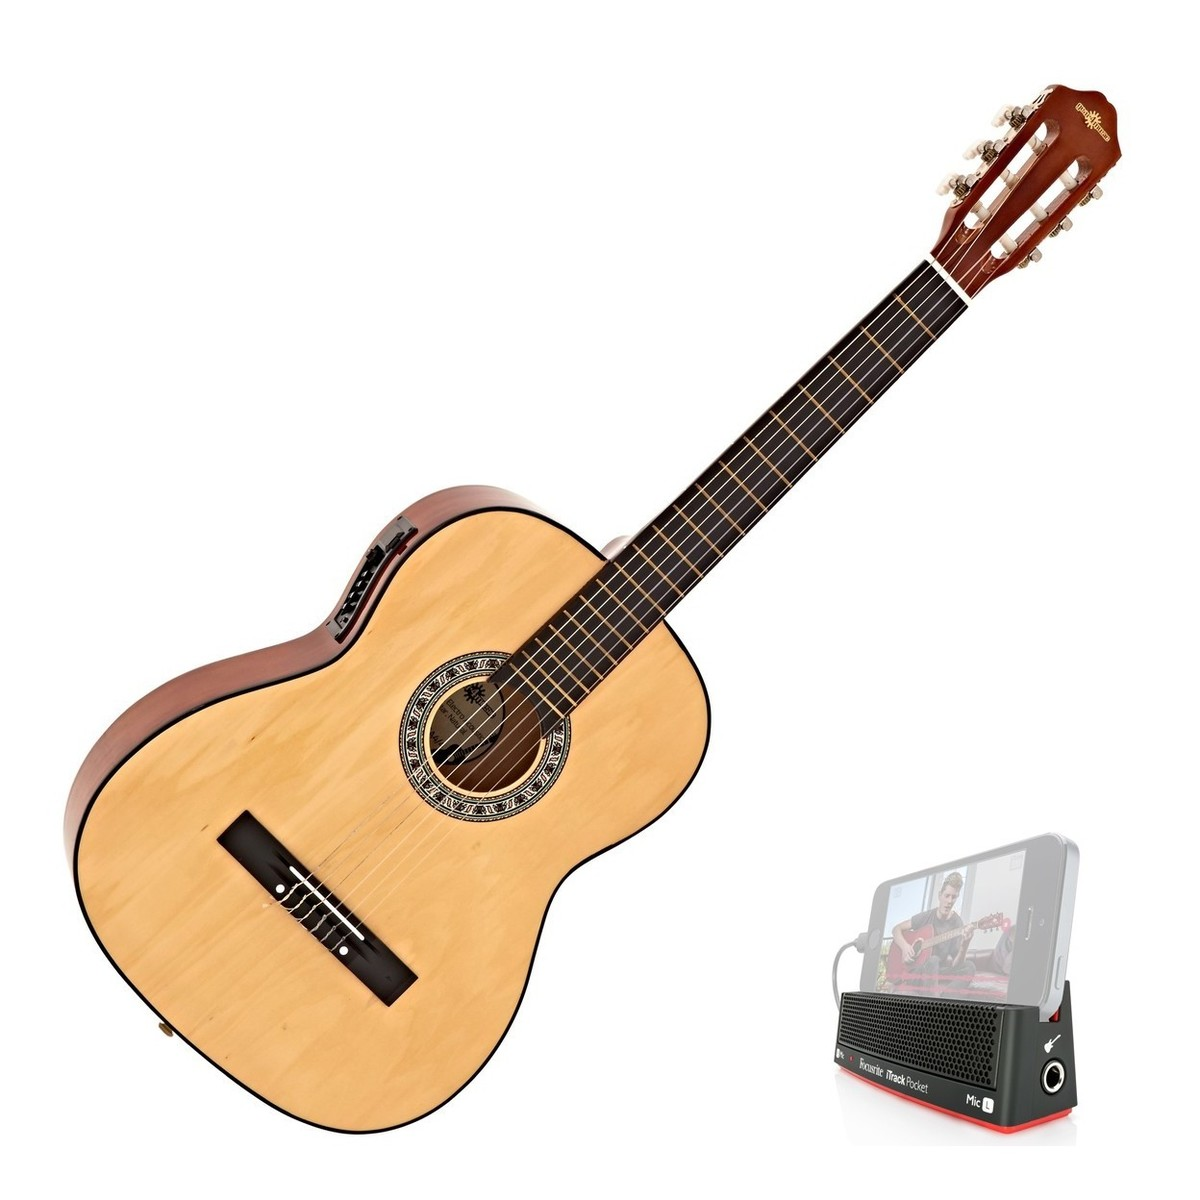 classical electro acoustic guitar by gear4music free itrack pocket at gear4music. Black Bedroom Furniture Sets. Home Design Ideas